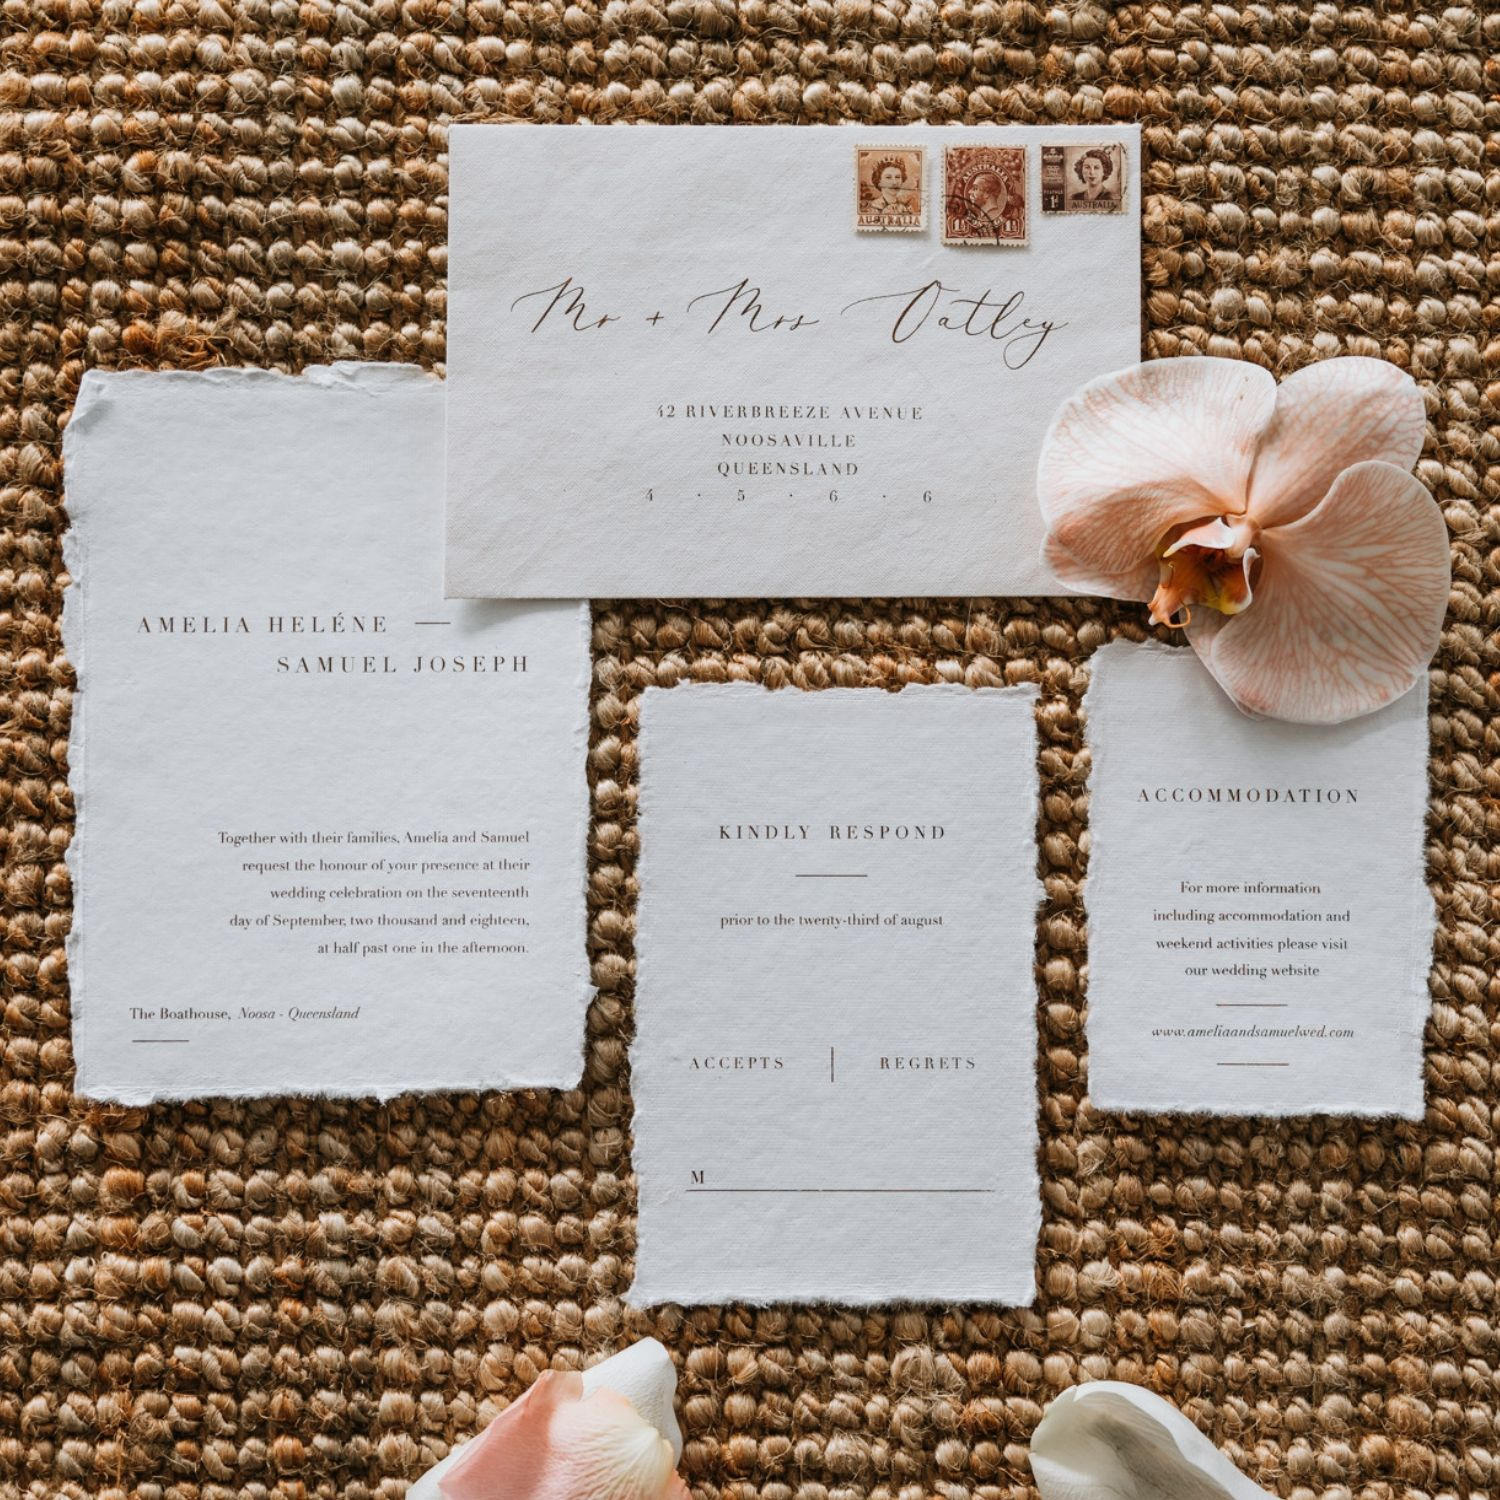 Wedding Stationery - We are such self-confessed lovers of paper stationery & printing. Let's touch all the textures and talk about all the colours & print options! We have got you covered from save the dates, invitation suites, menus, all the way to the last thank-you card. If you are unsure where to start, Jane will work with you to discover your style and then capture that so that your paper stationery tells your love story. We have custom and pre-designed options to help cater for a range of budgets and styles.Finishing touches are what we are all about…it's the little details that we just love! Wax seals, handmade papers, white ink printing or hand dyed silk ribbons, we love them all.